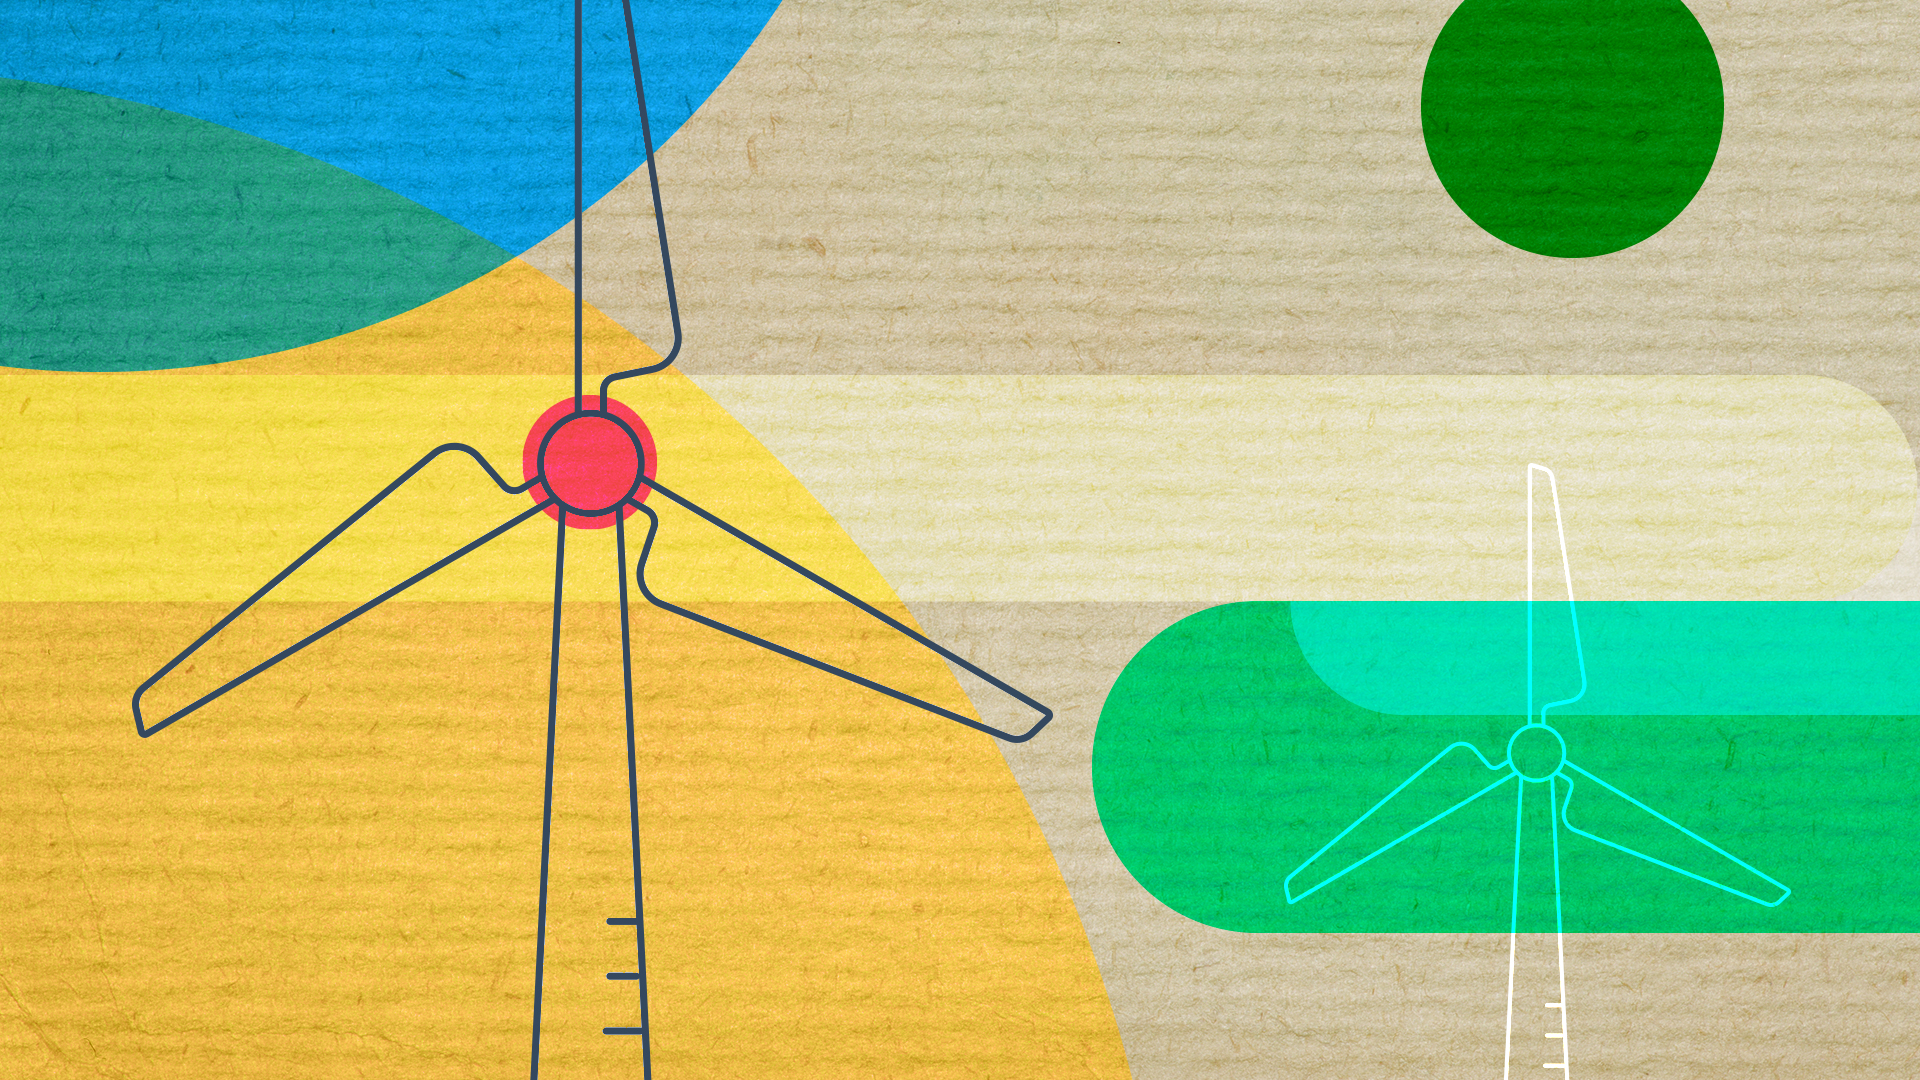 How We Got Lost on the Green Energy Highway